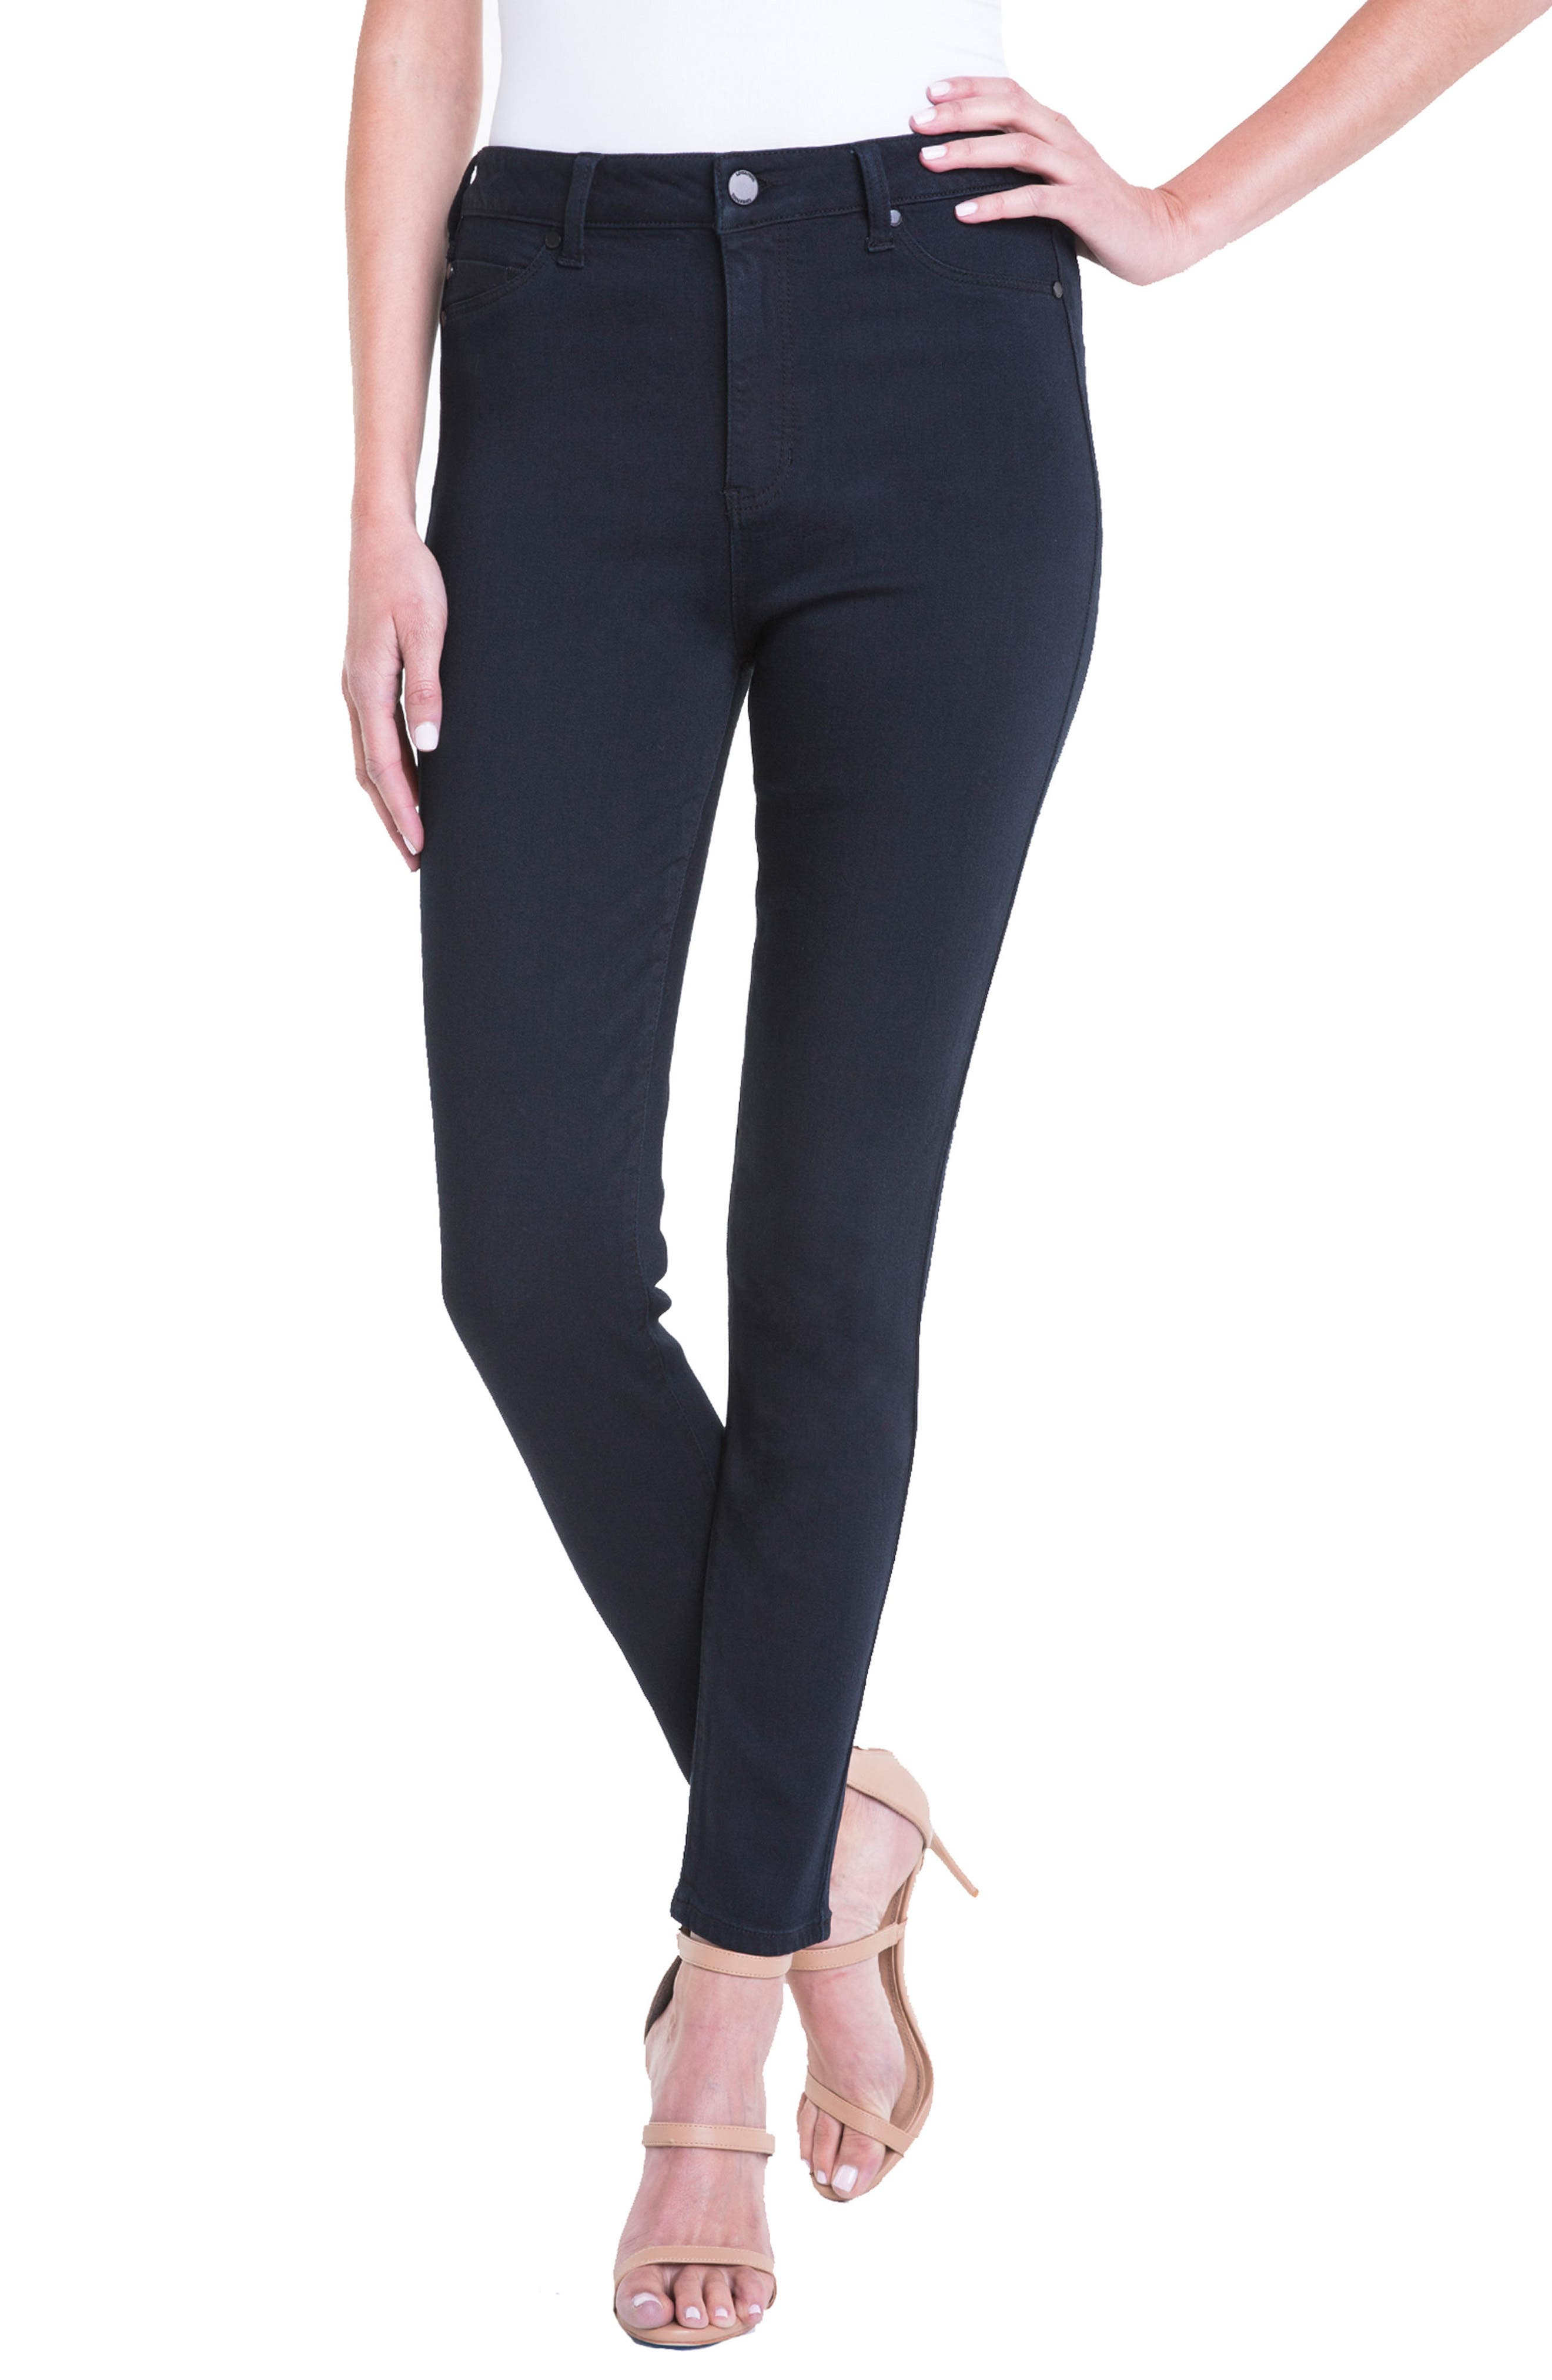 Alternate Image 1 Selected - Liverpool Jeans Company Bridget High Waist Skinny Jeans